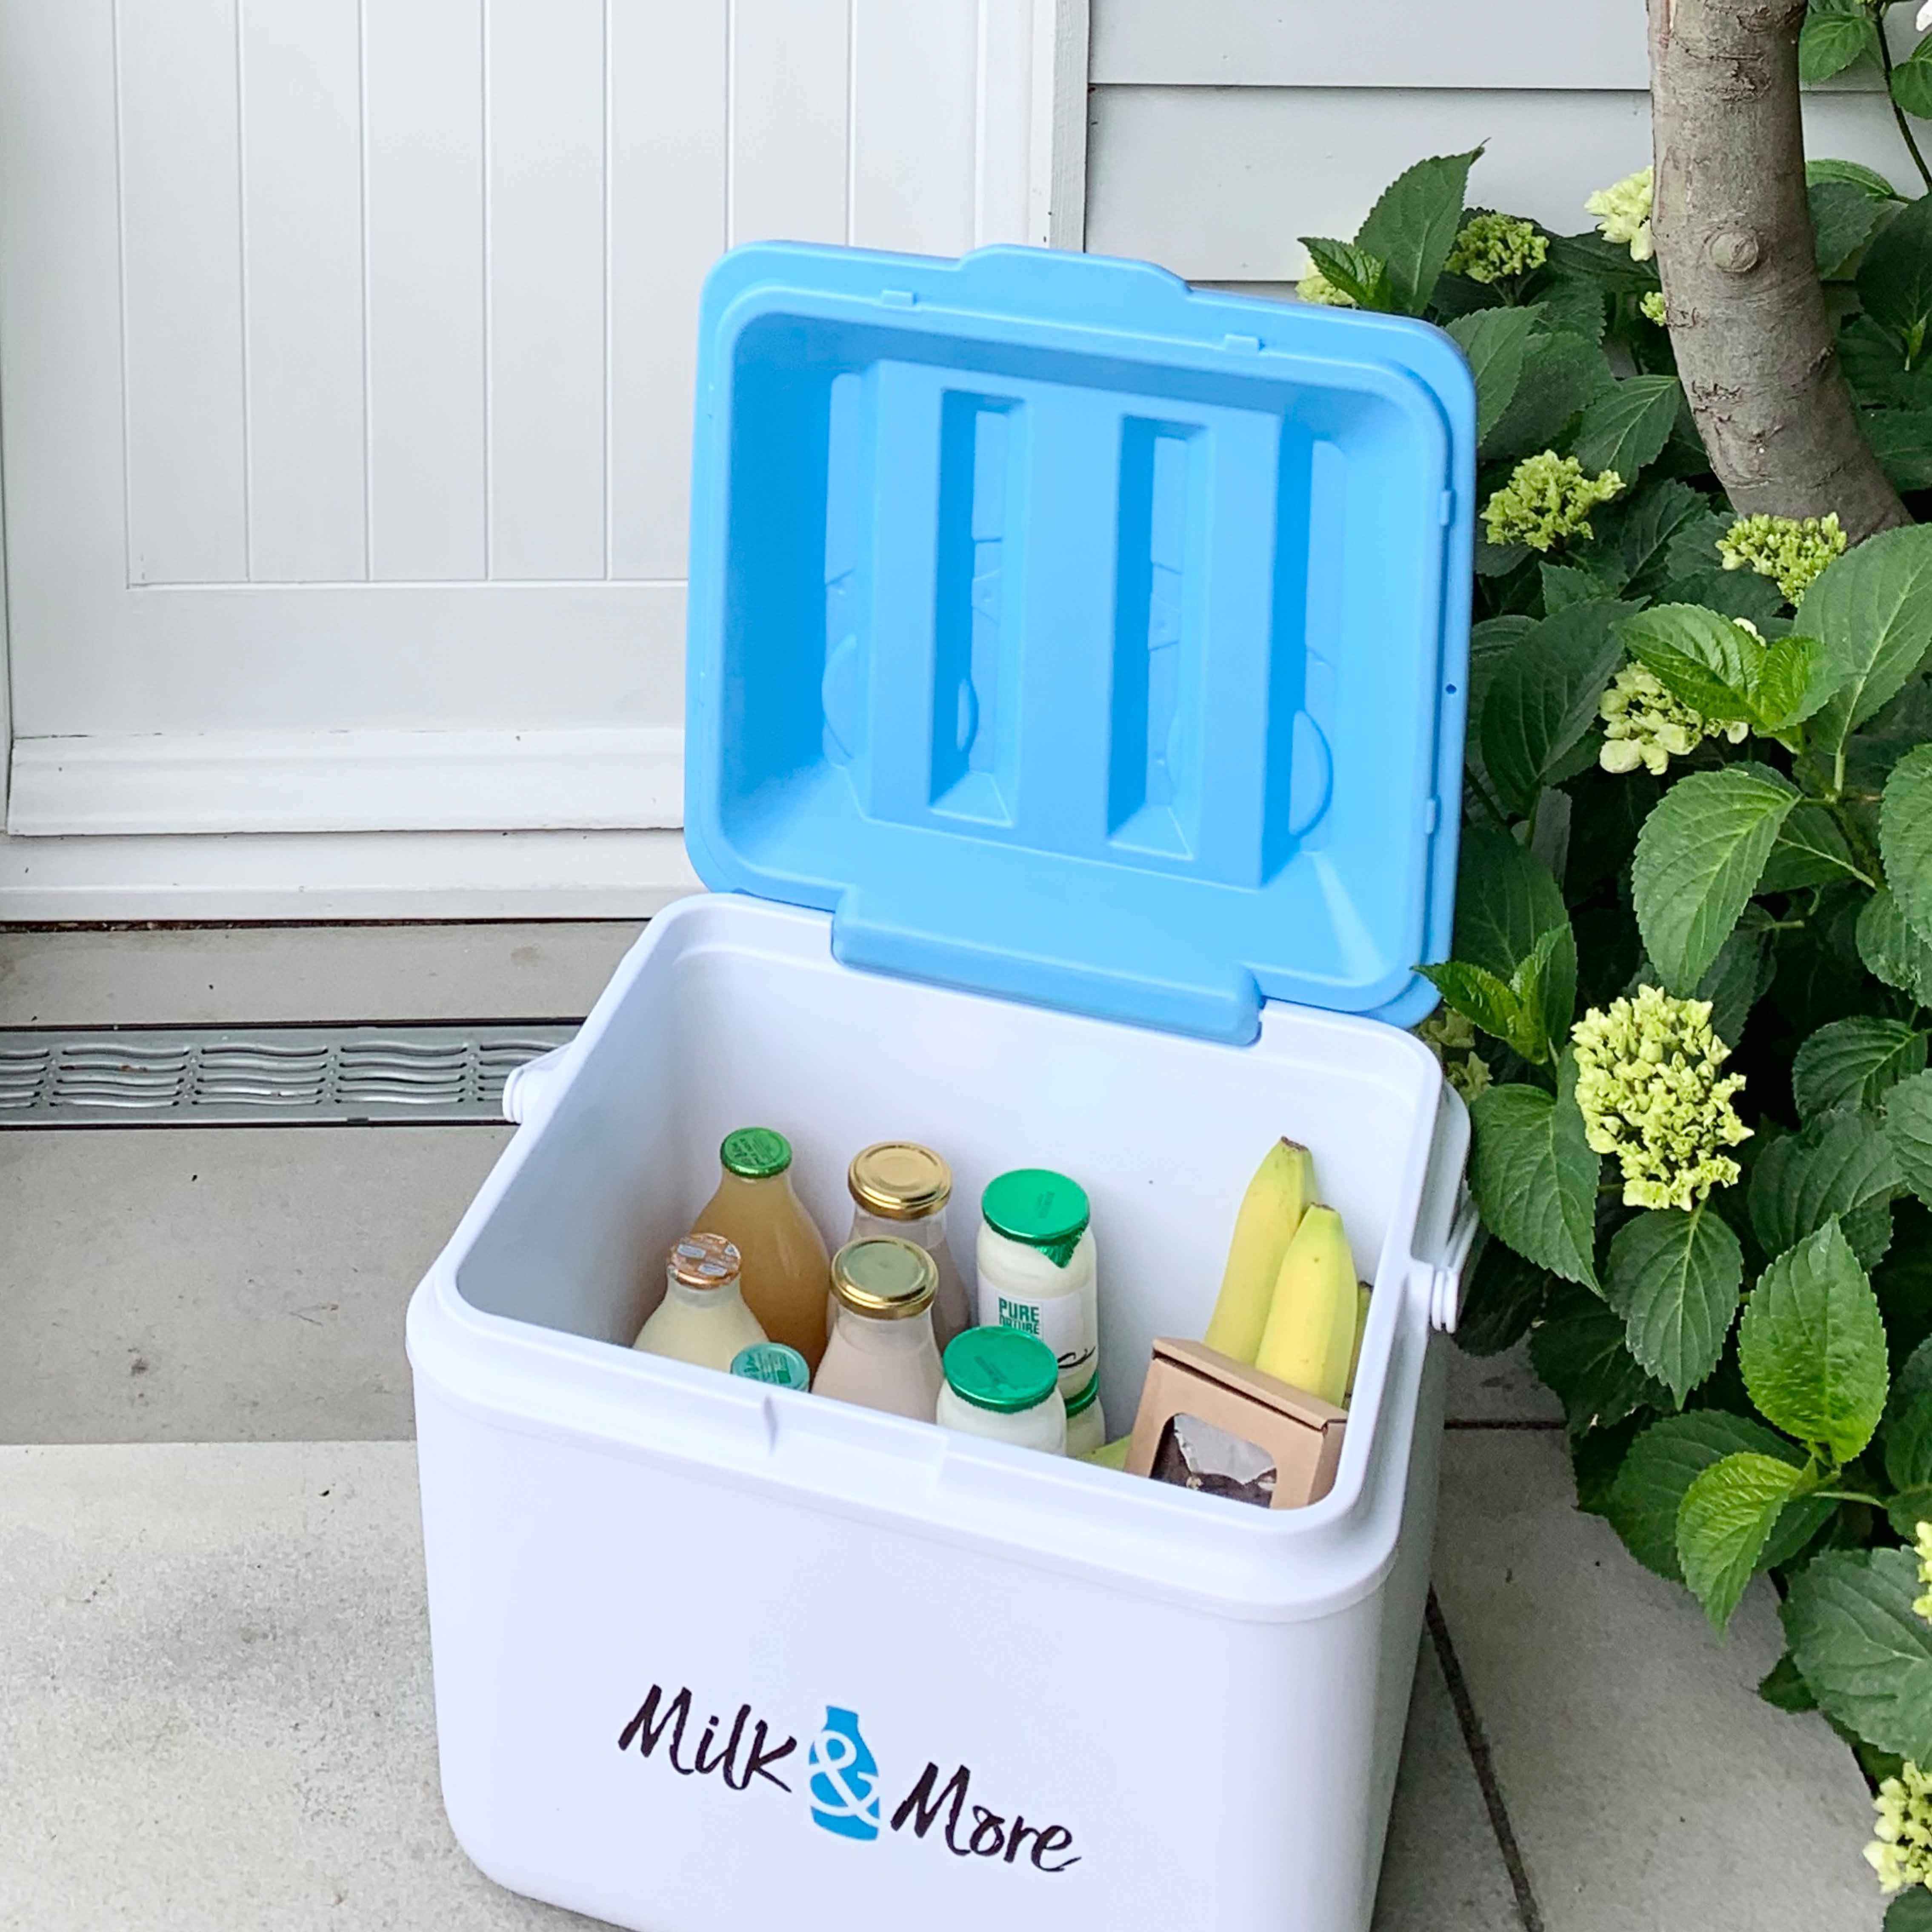 Milk & More Delivery Cool Box